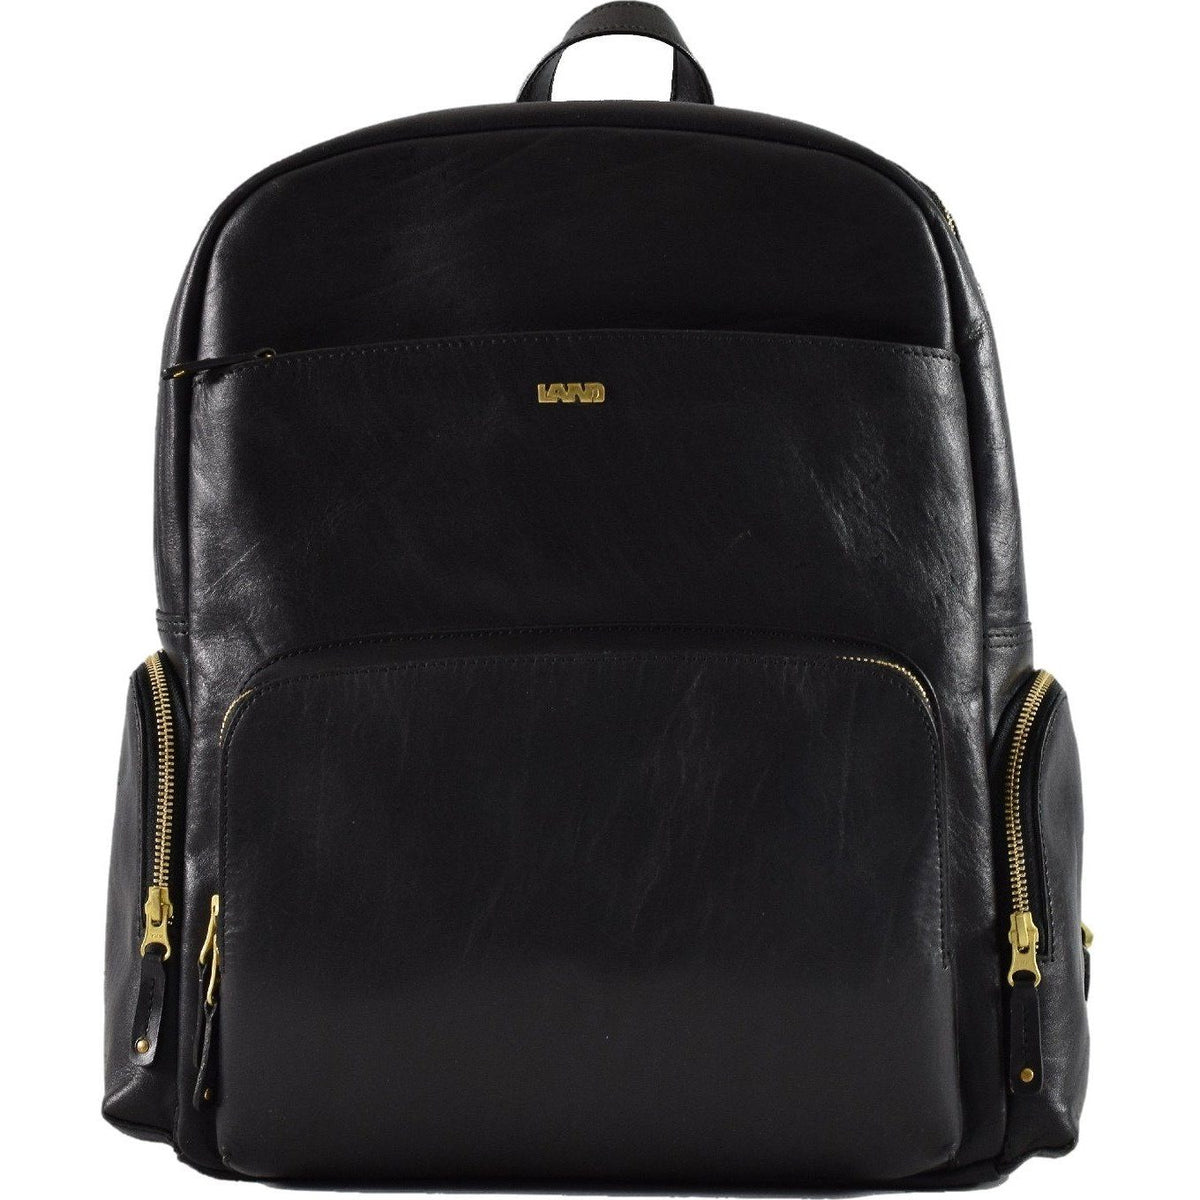 Limited Bardot Backpack, Backpack | LAND Leather